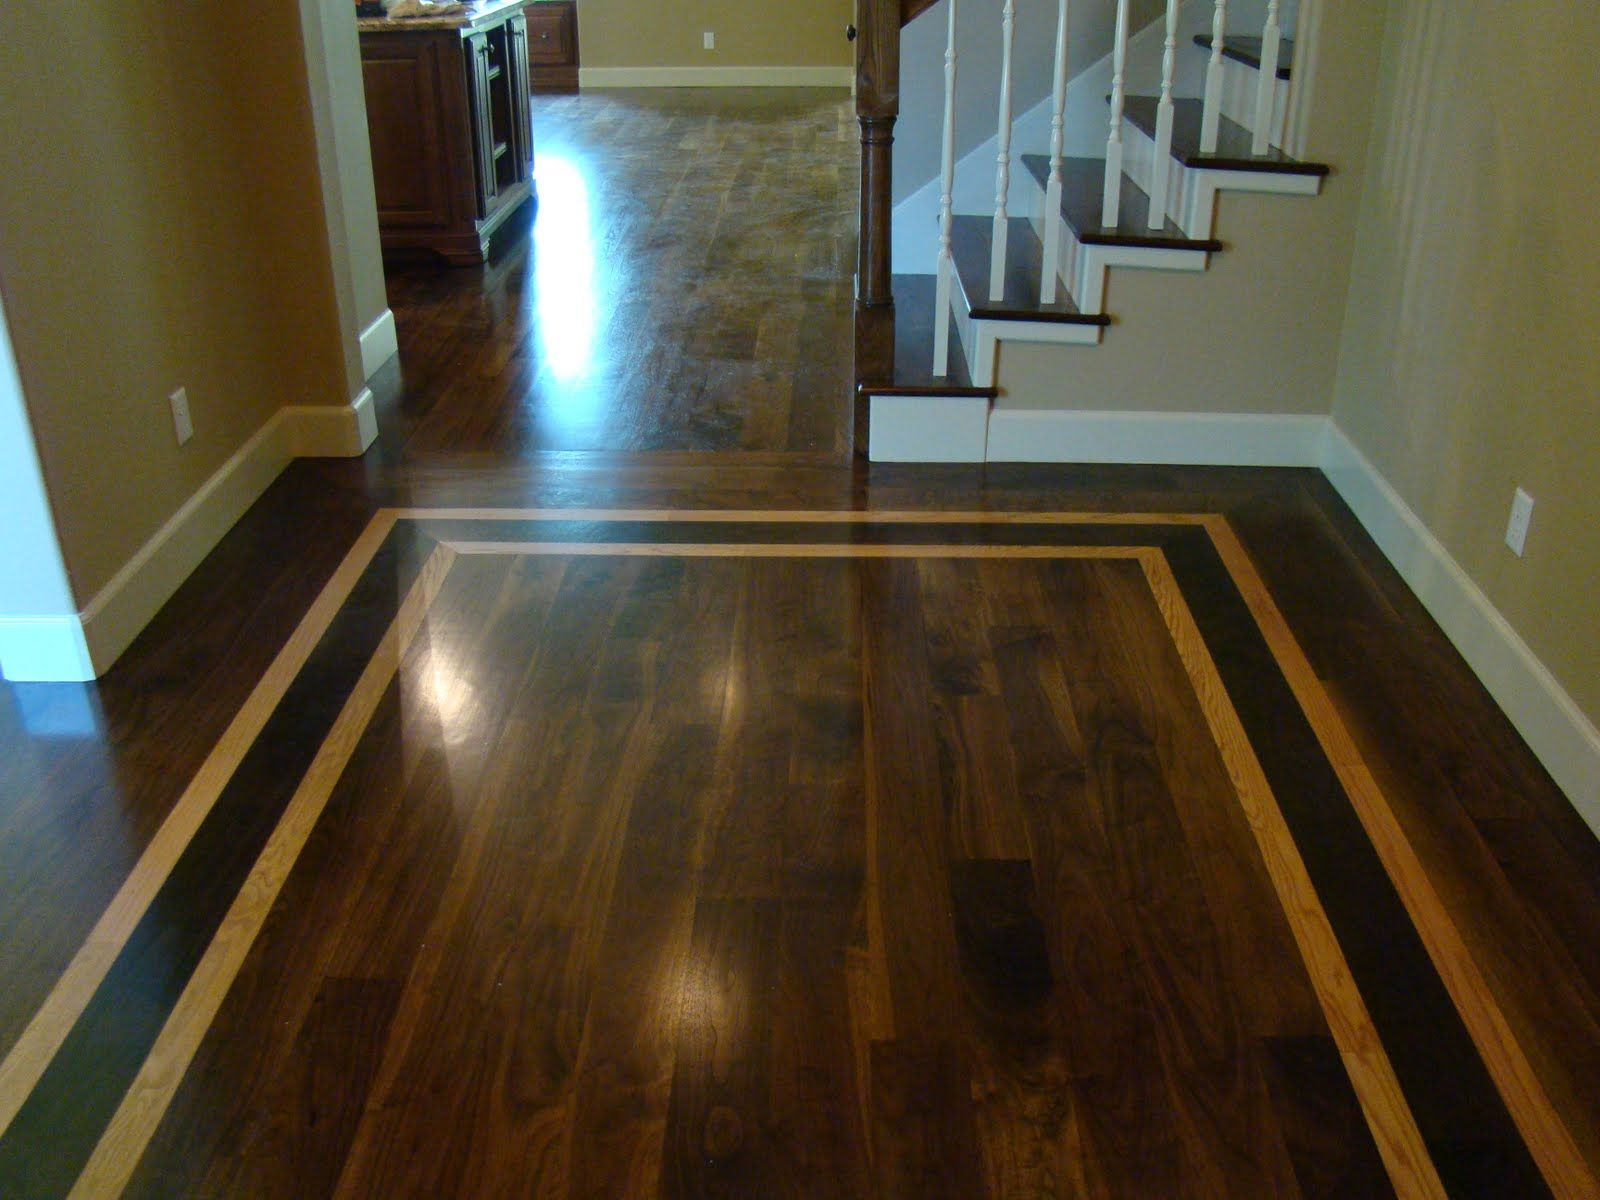 Hardwood Floor Inlays hardwood floor inlays Wood Floor Inlays Reviews Wood Floor Inlay Long Island Refinish Restore Hardwoods Pic 3